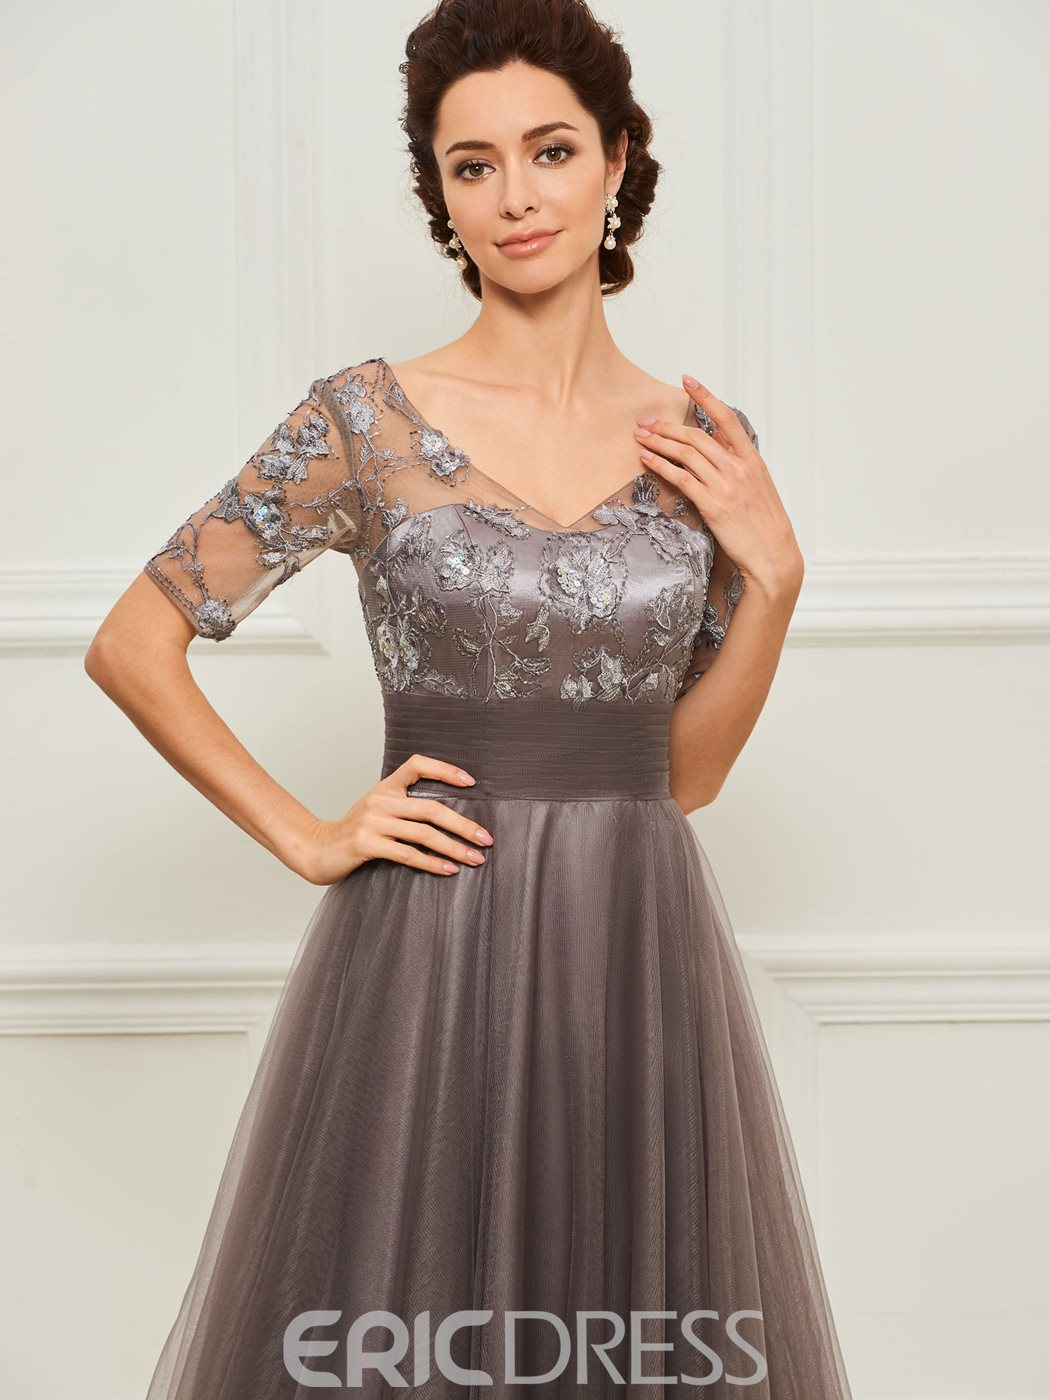 Ericdress Short Sleeves Appliques Mother of the Bride Dress